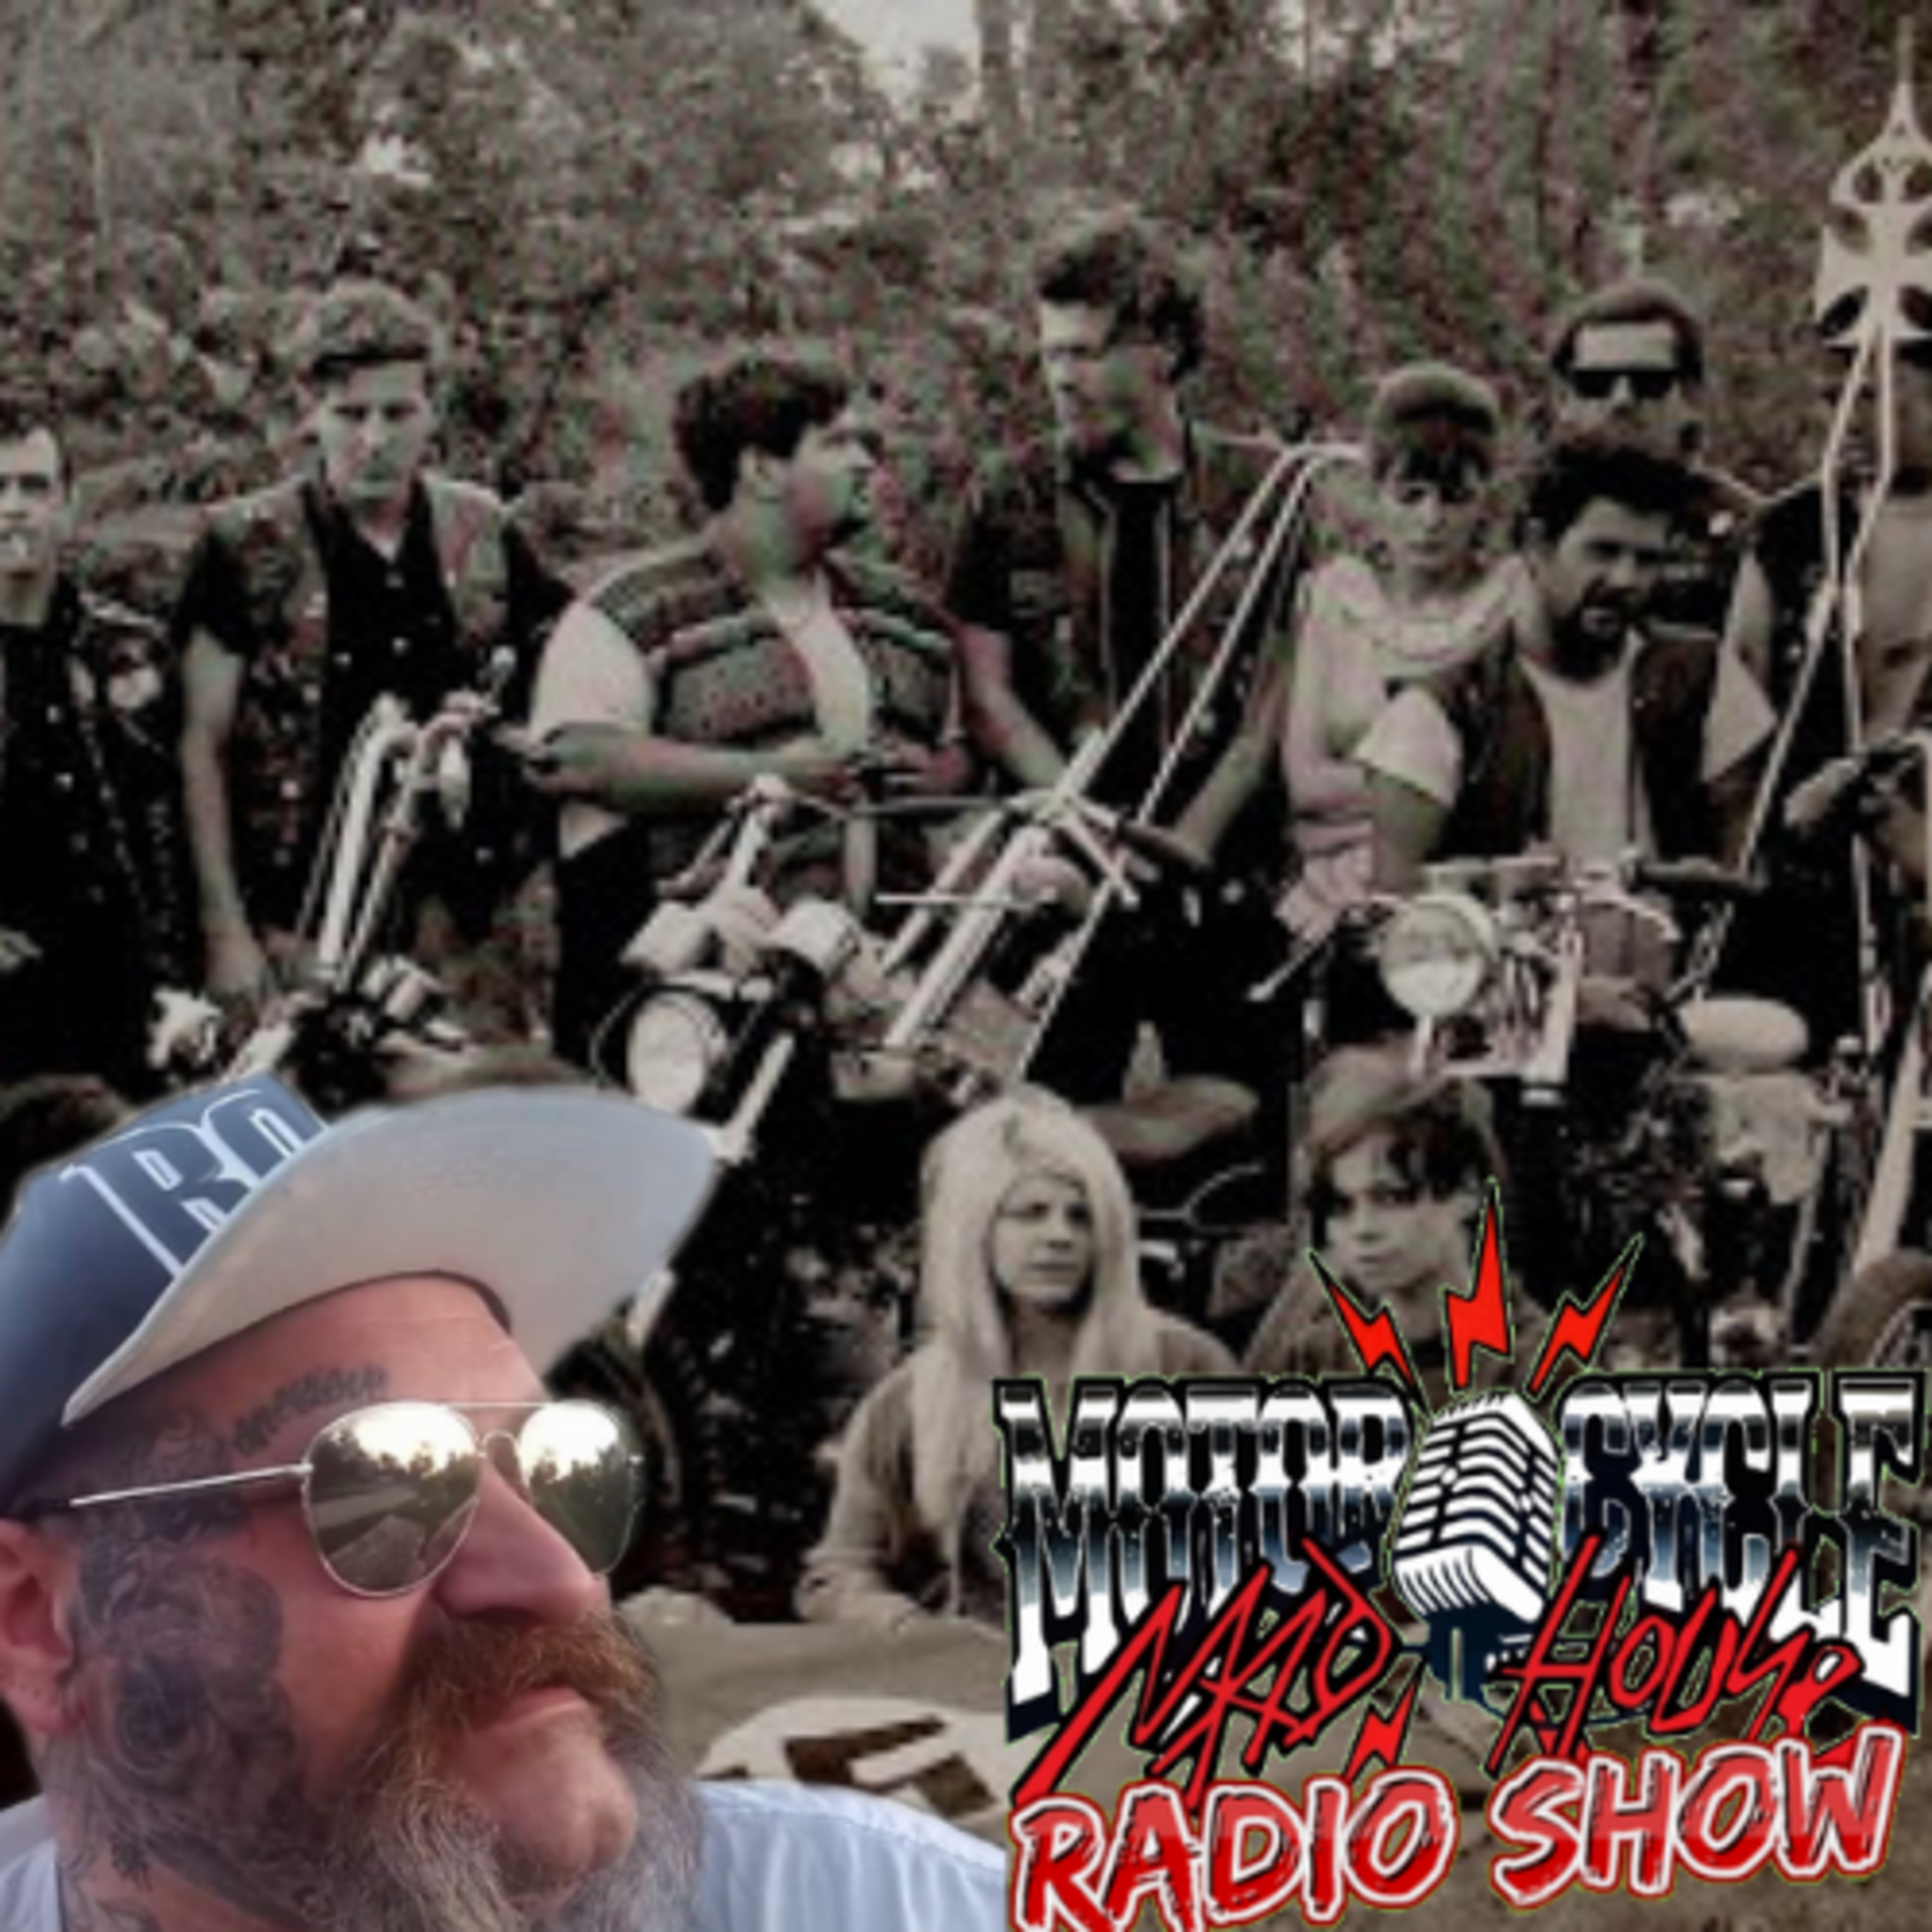 Season 2 Episode 13 The 60's Biker and interview with Judge Hayes. A biker who lived through history